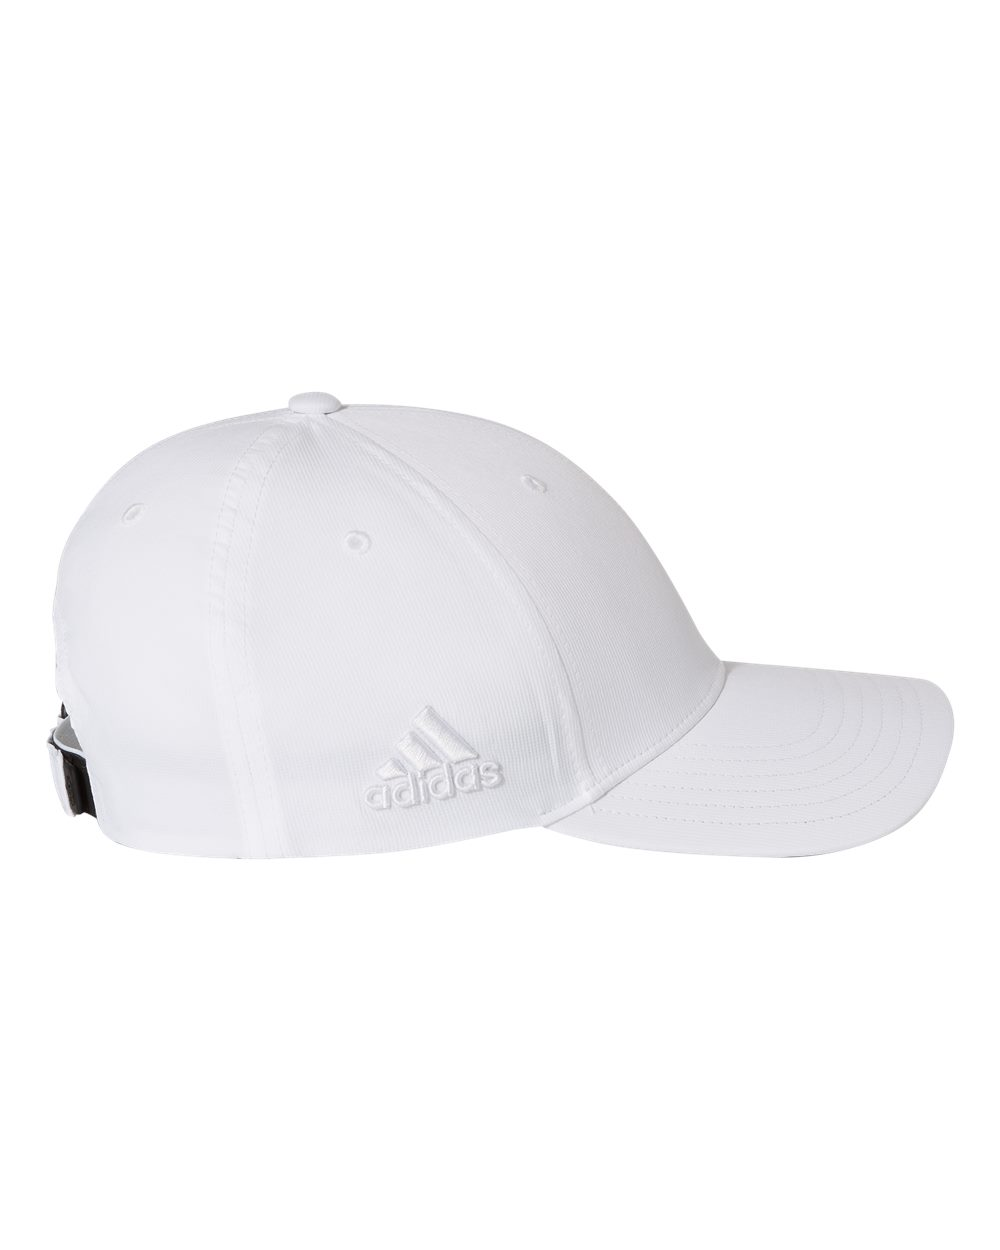 ADIDAS POLY TEXTURED PERFORMANCE CAP